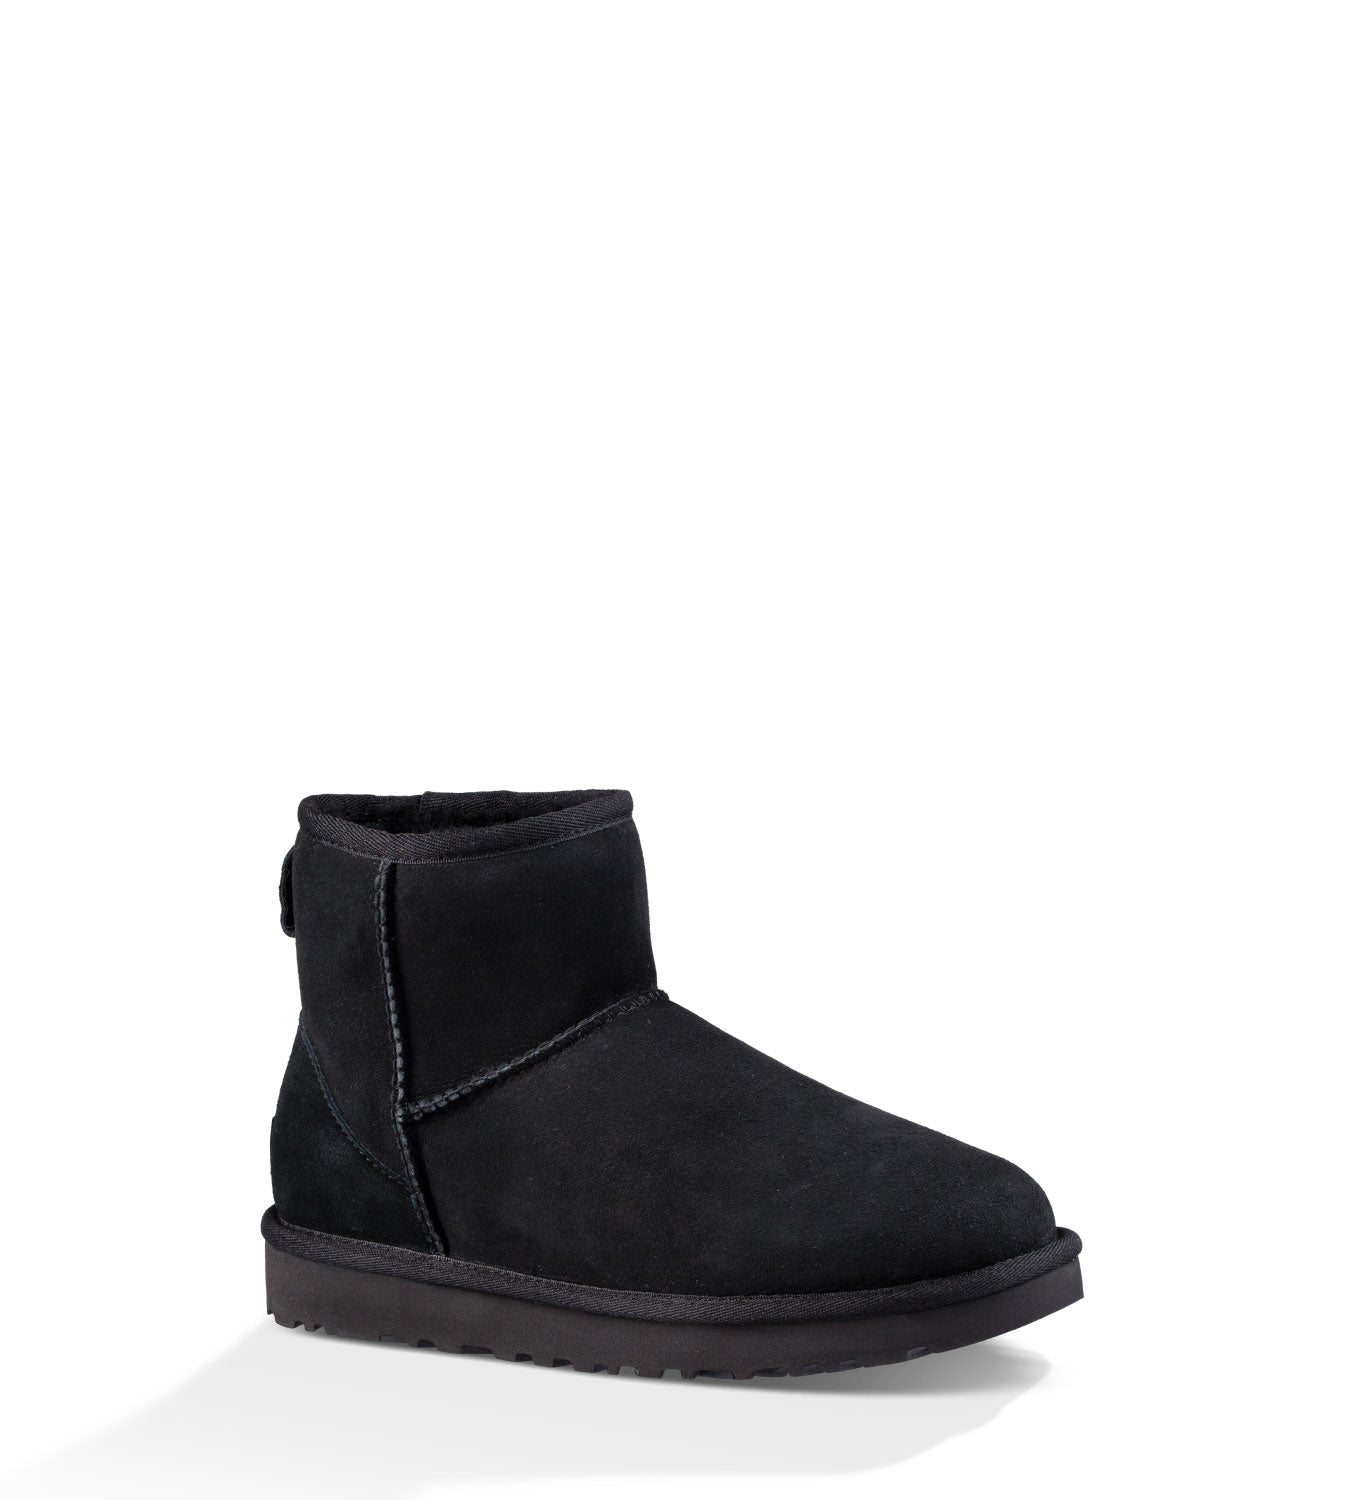 UGG Women's Classic Mini II in Black